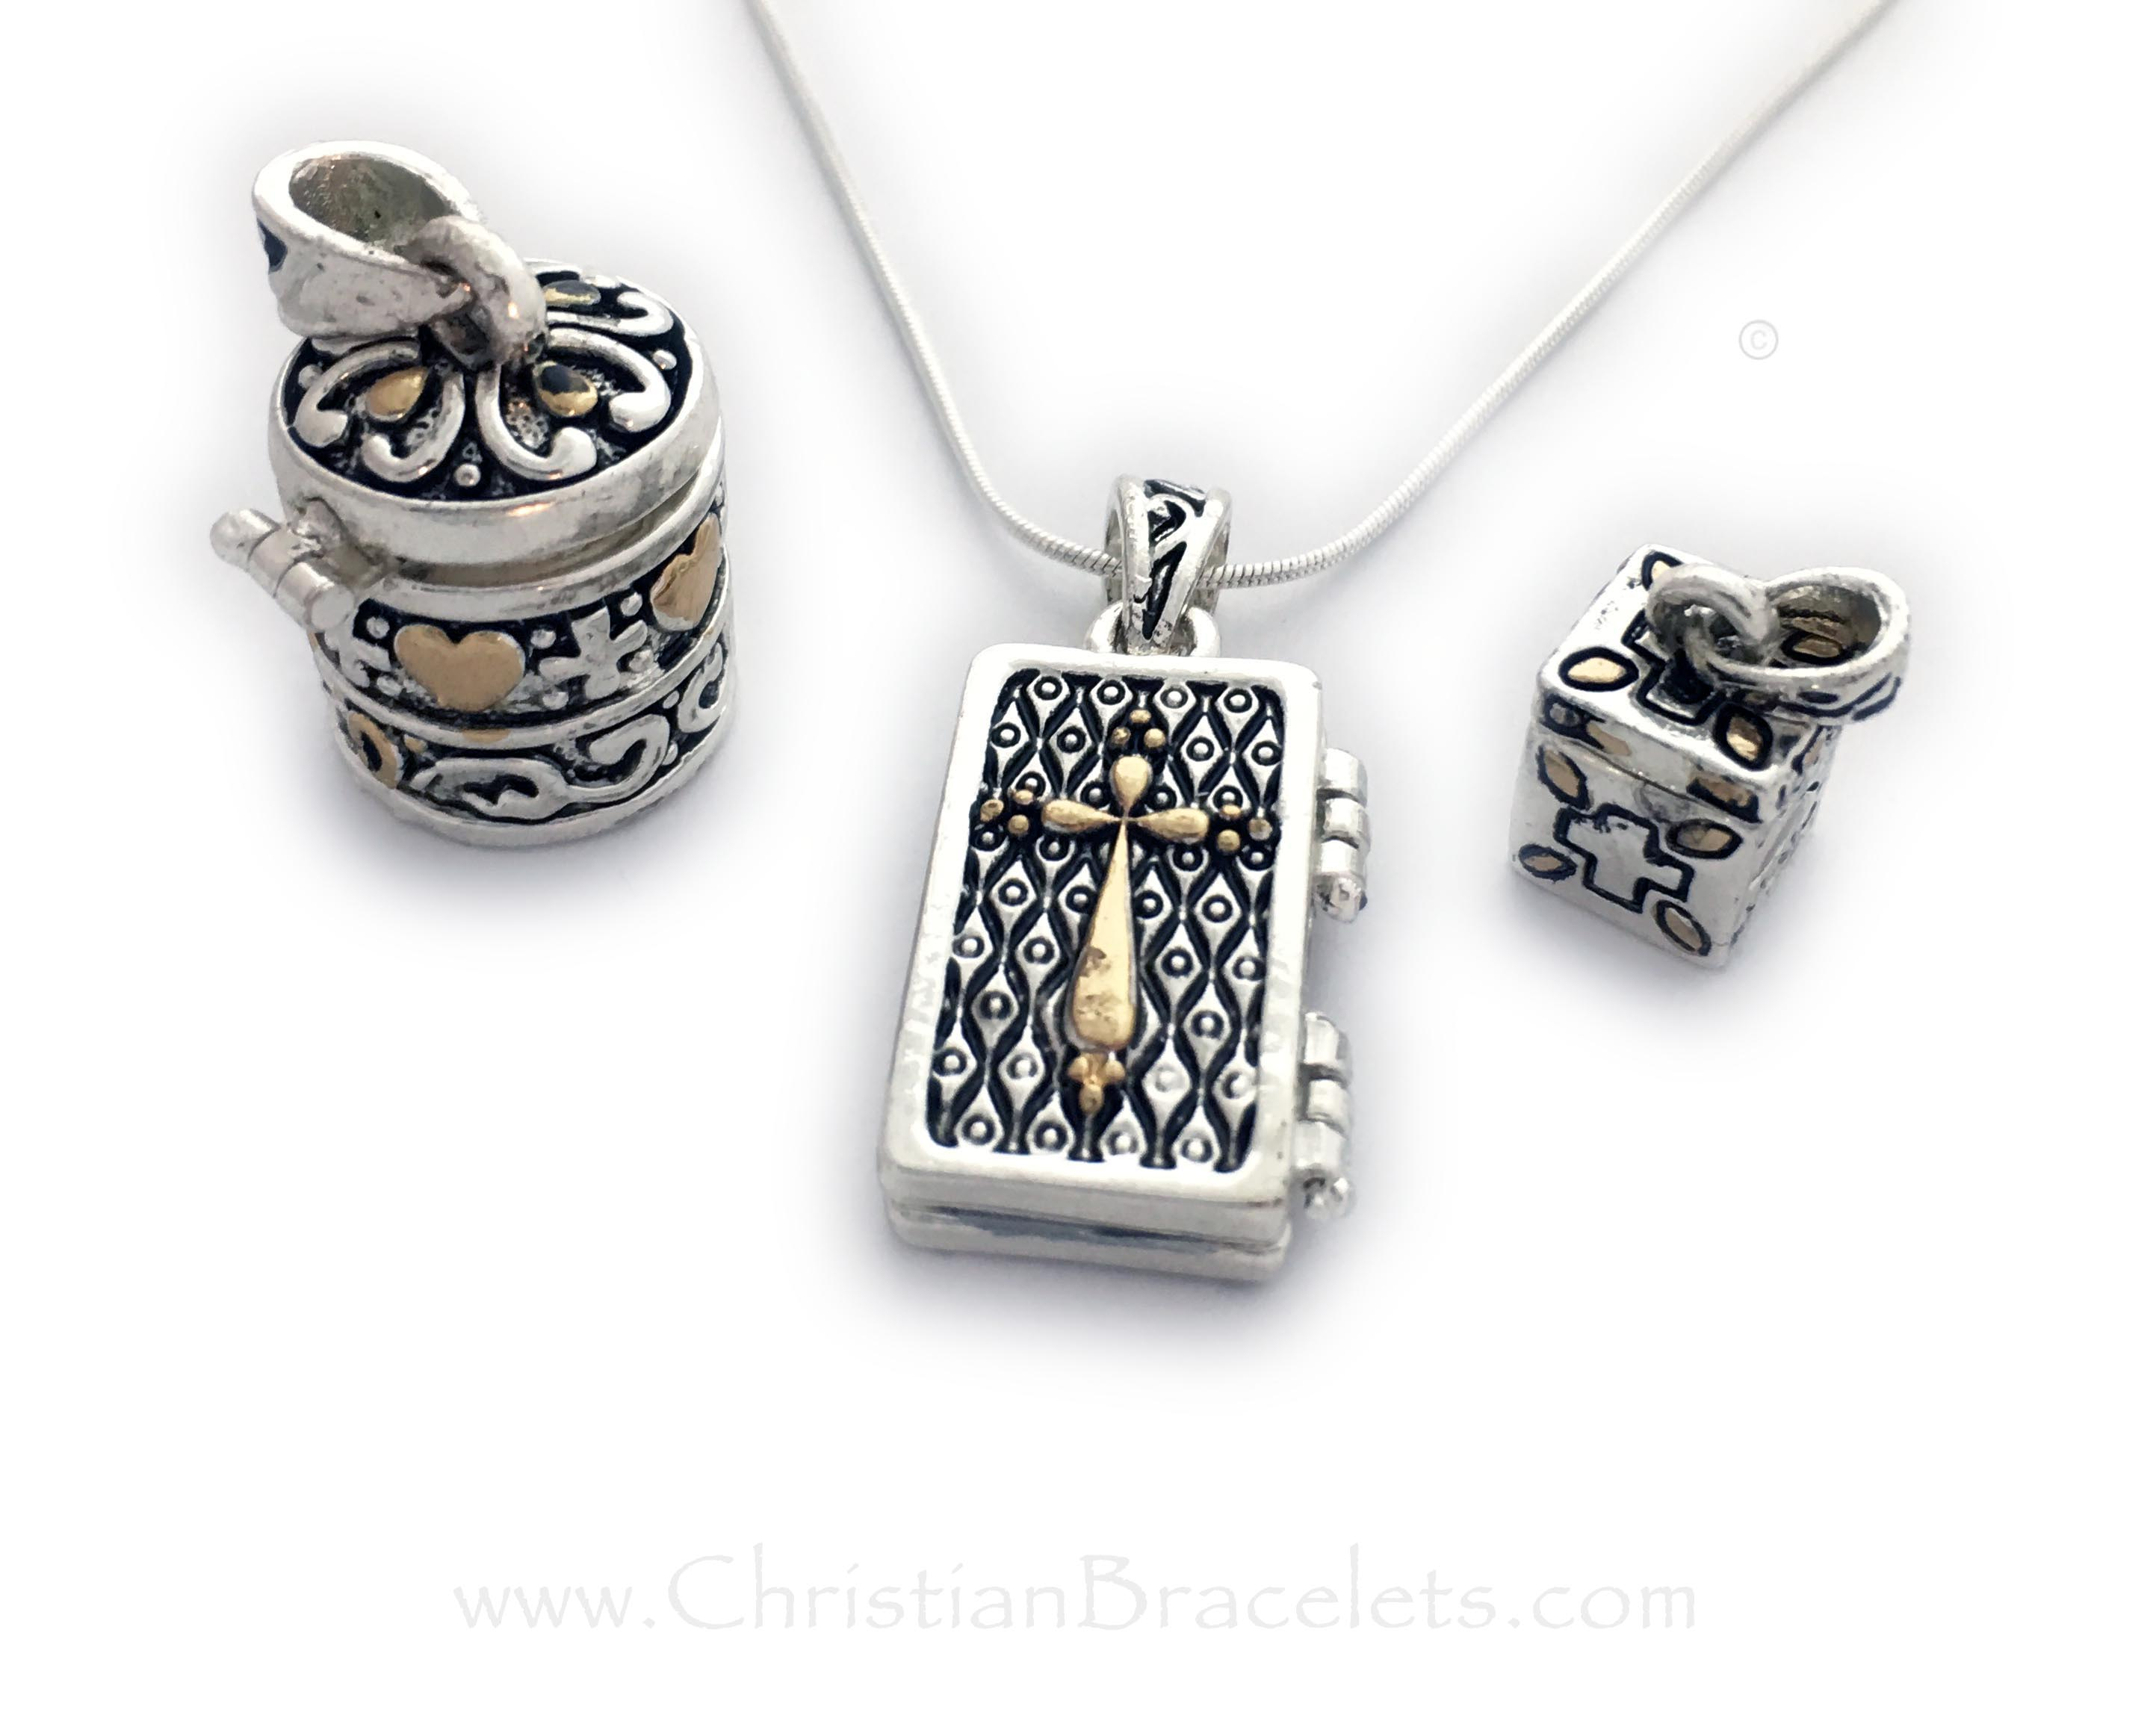 Prayer Box Necklaces - Round, Flat and Square - Pewter Prayer Box Charm Necklaces - Blessing Box Pendants